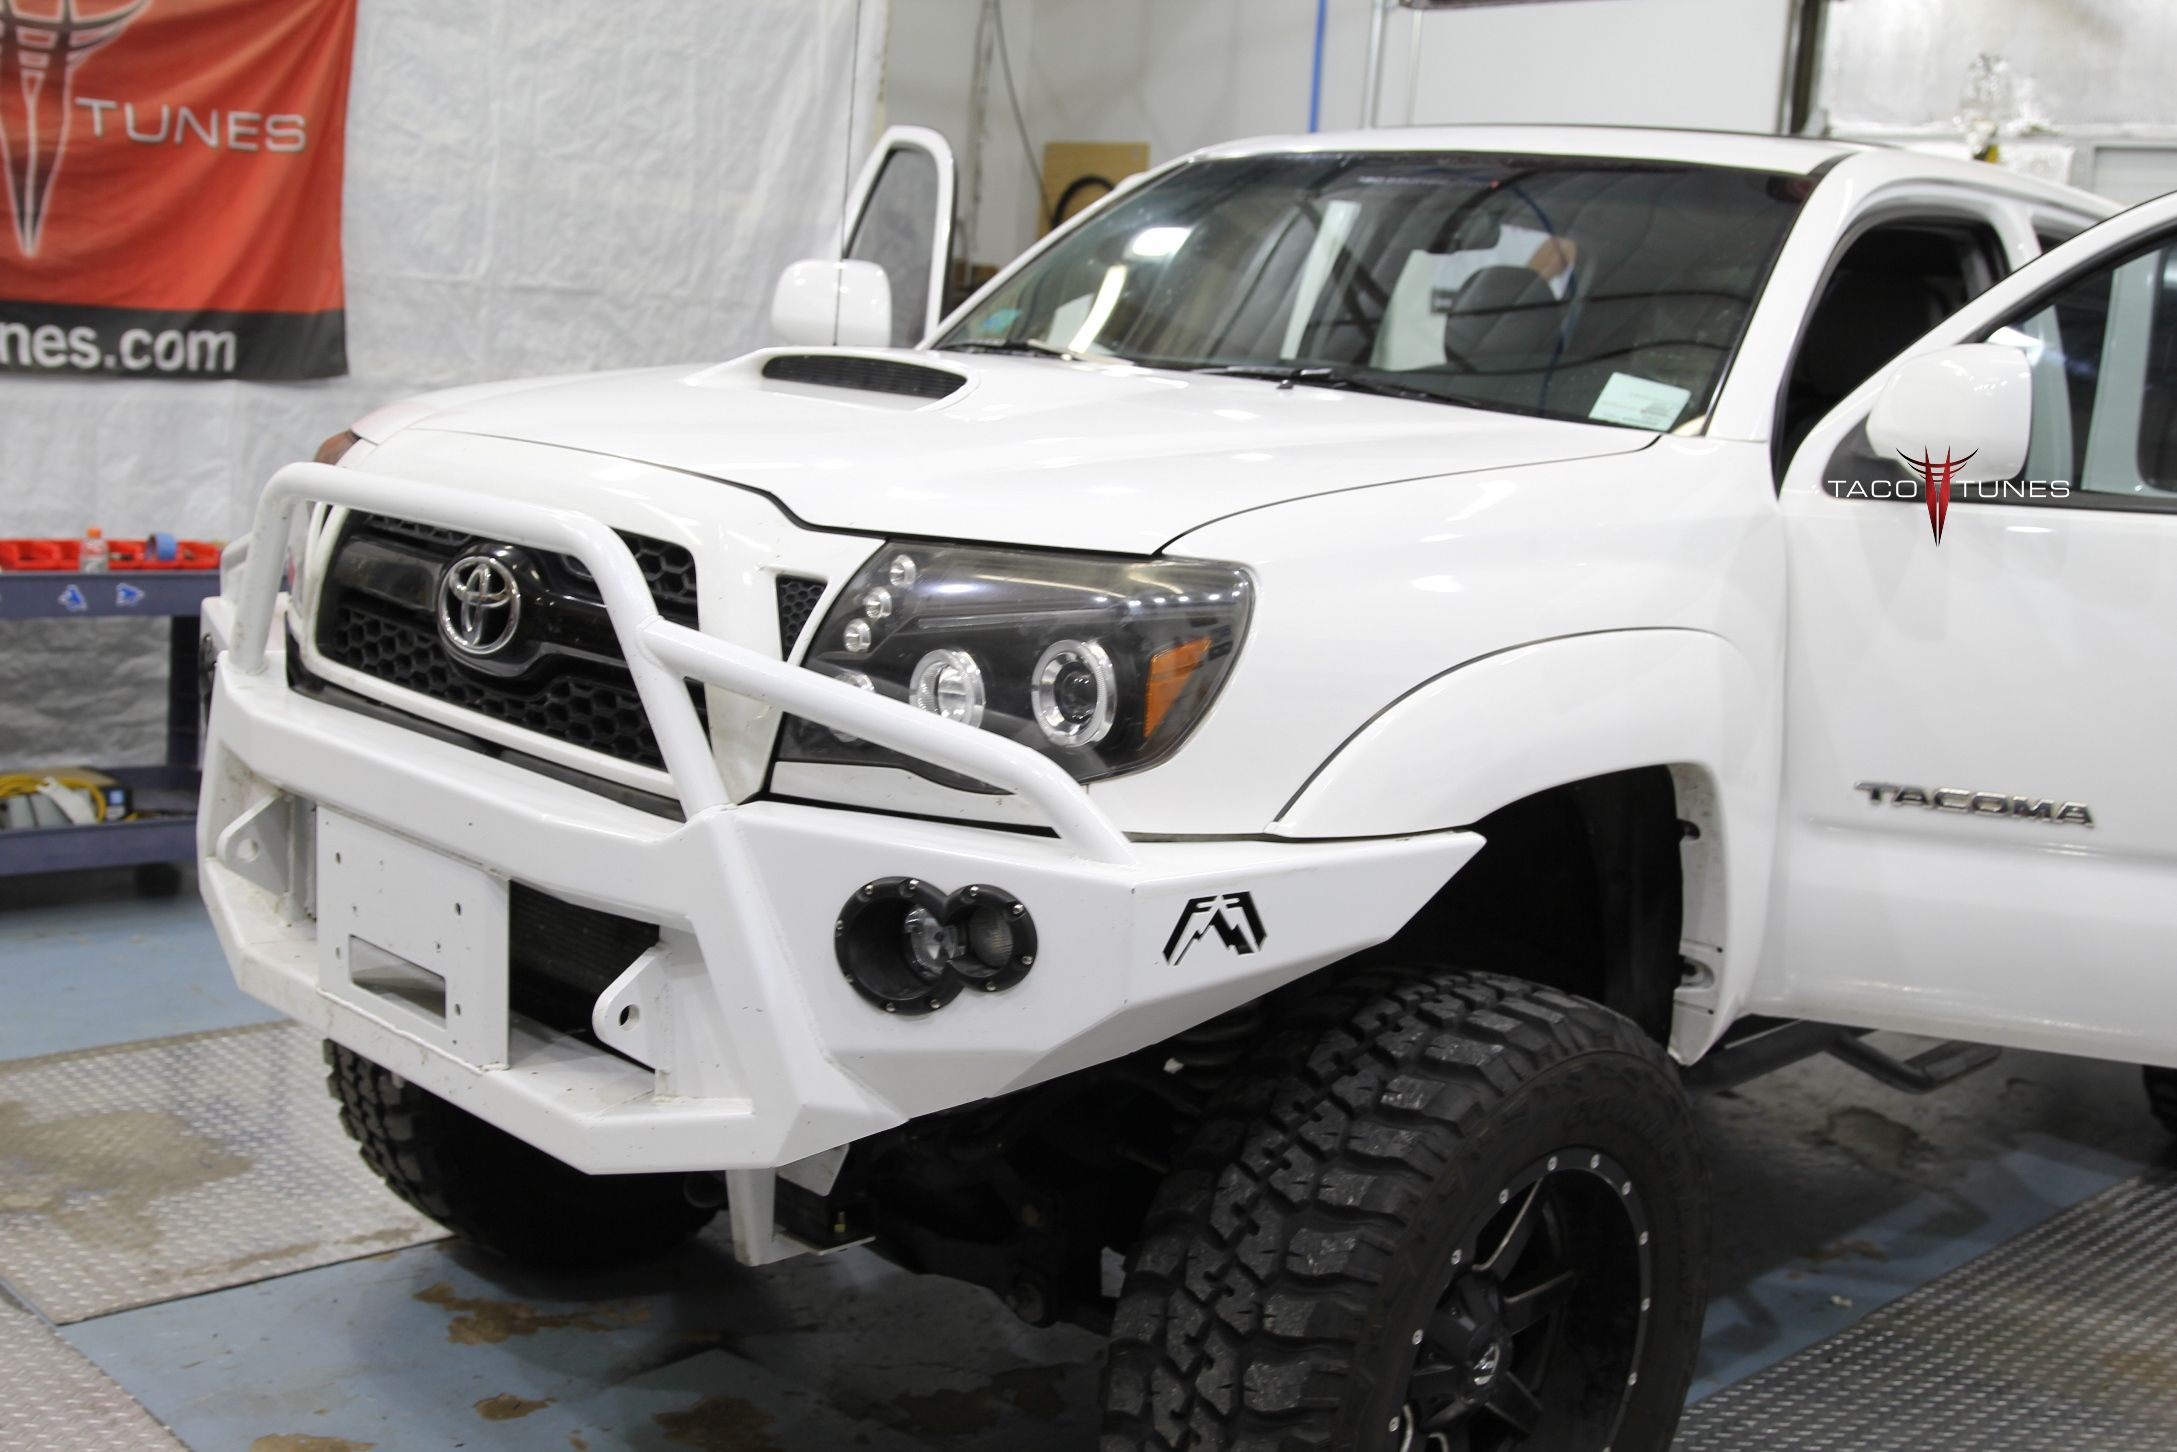 2011 toyota tacoma double cab trd sport for sale taco. Black Bedroom Furniture Sets. Home Design Ideas